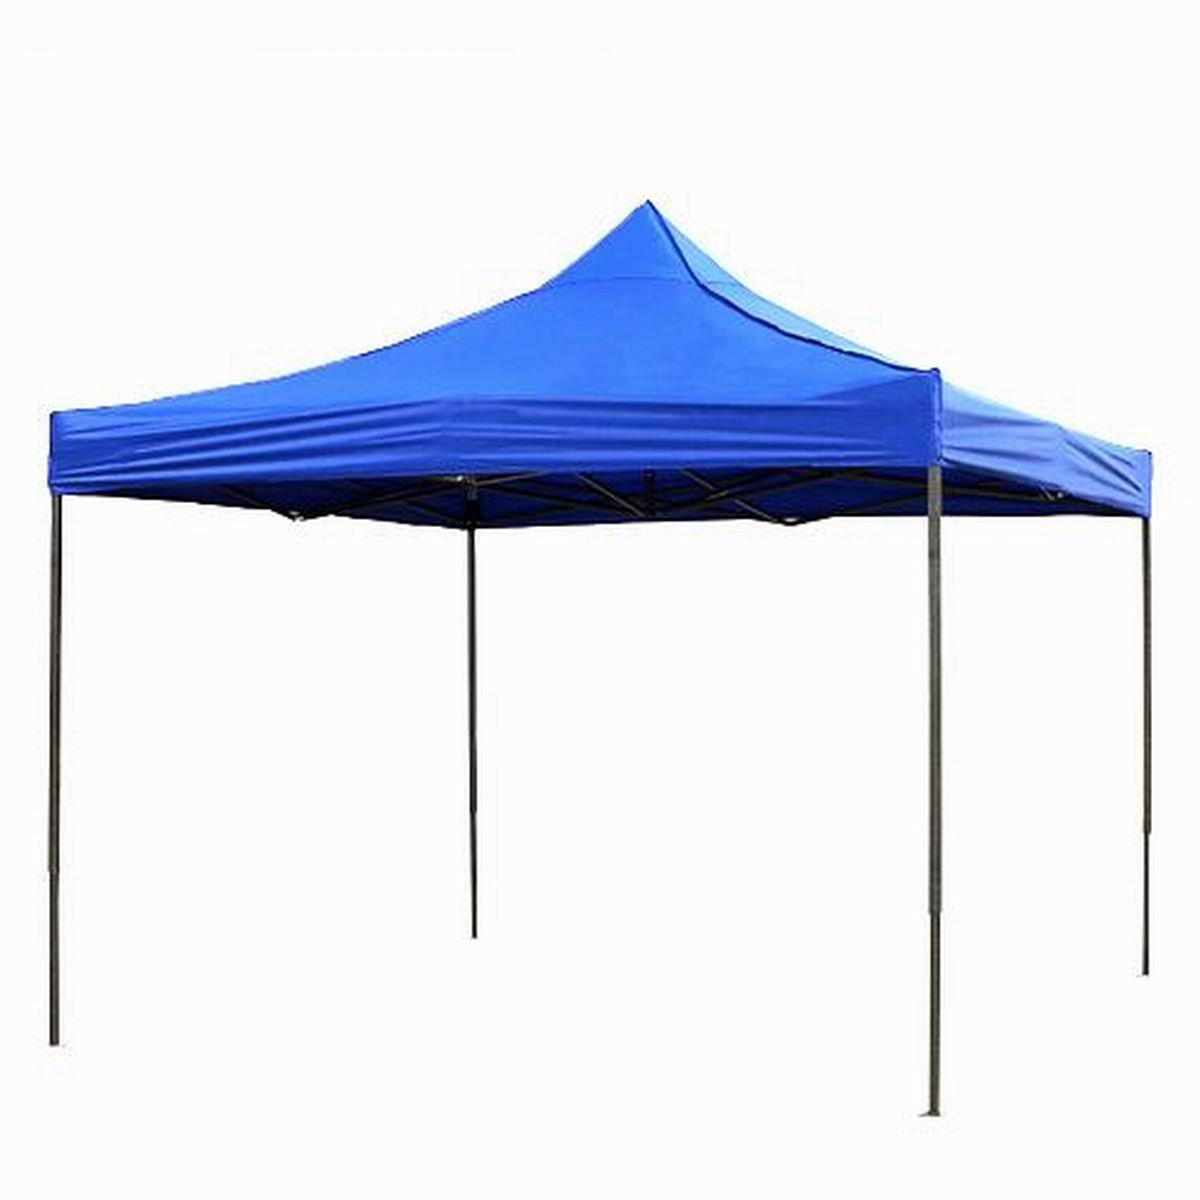 Qisan Folding Canopy Lightweight Gazebos outdoor pop up portable shade, Blue, 10 By 10-feet